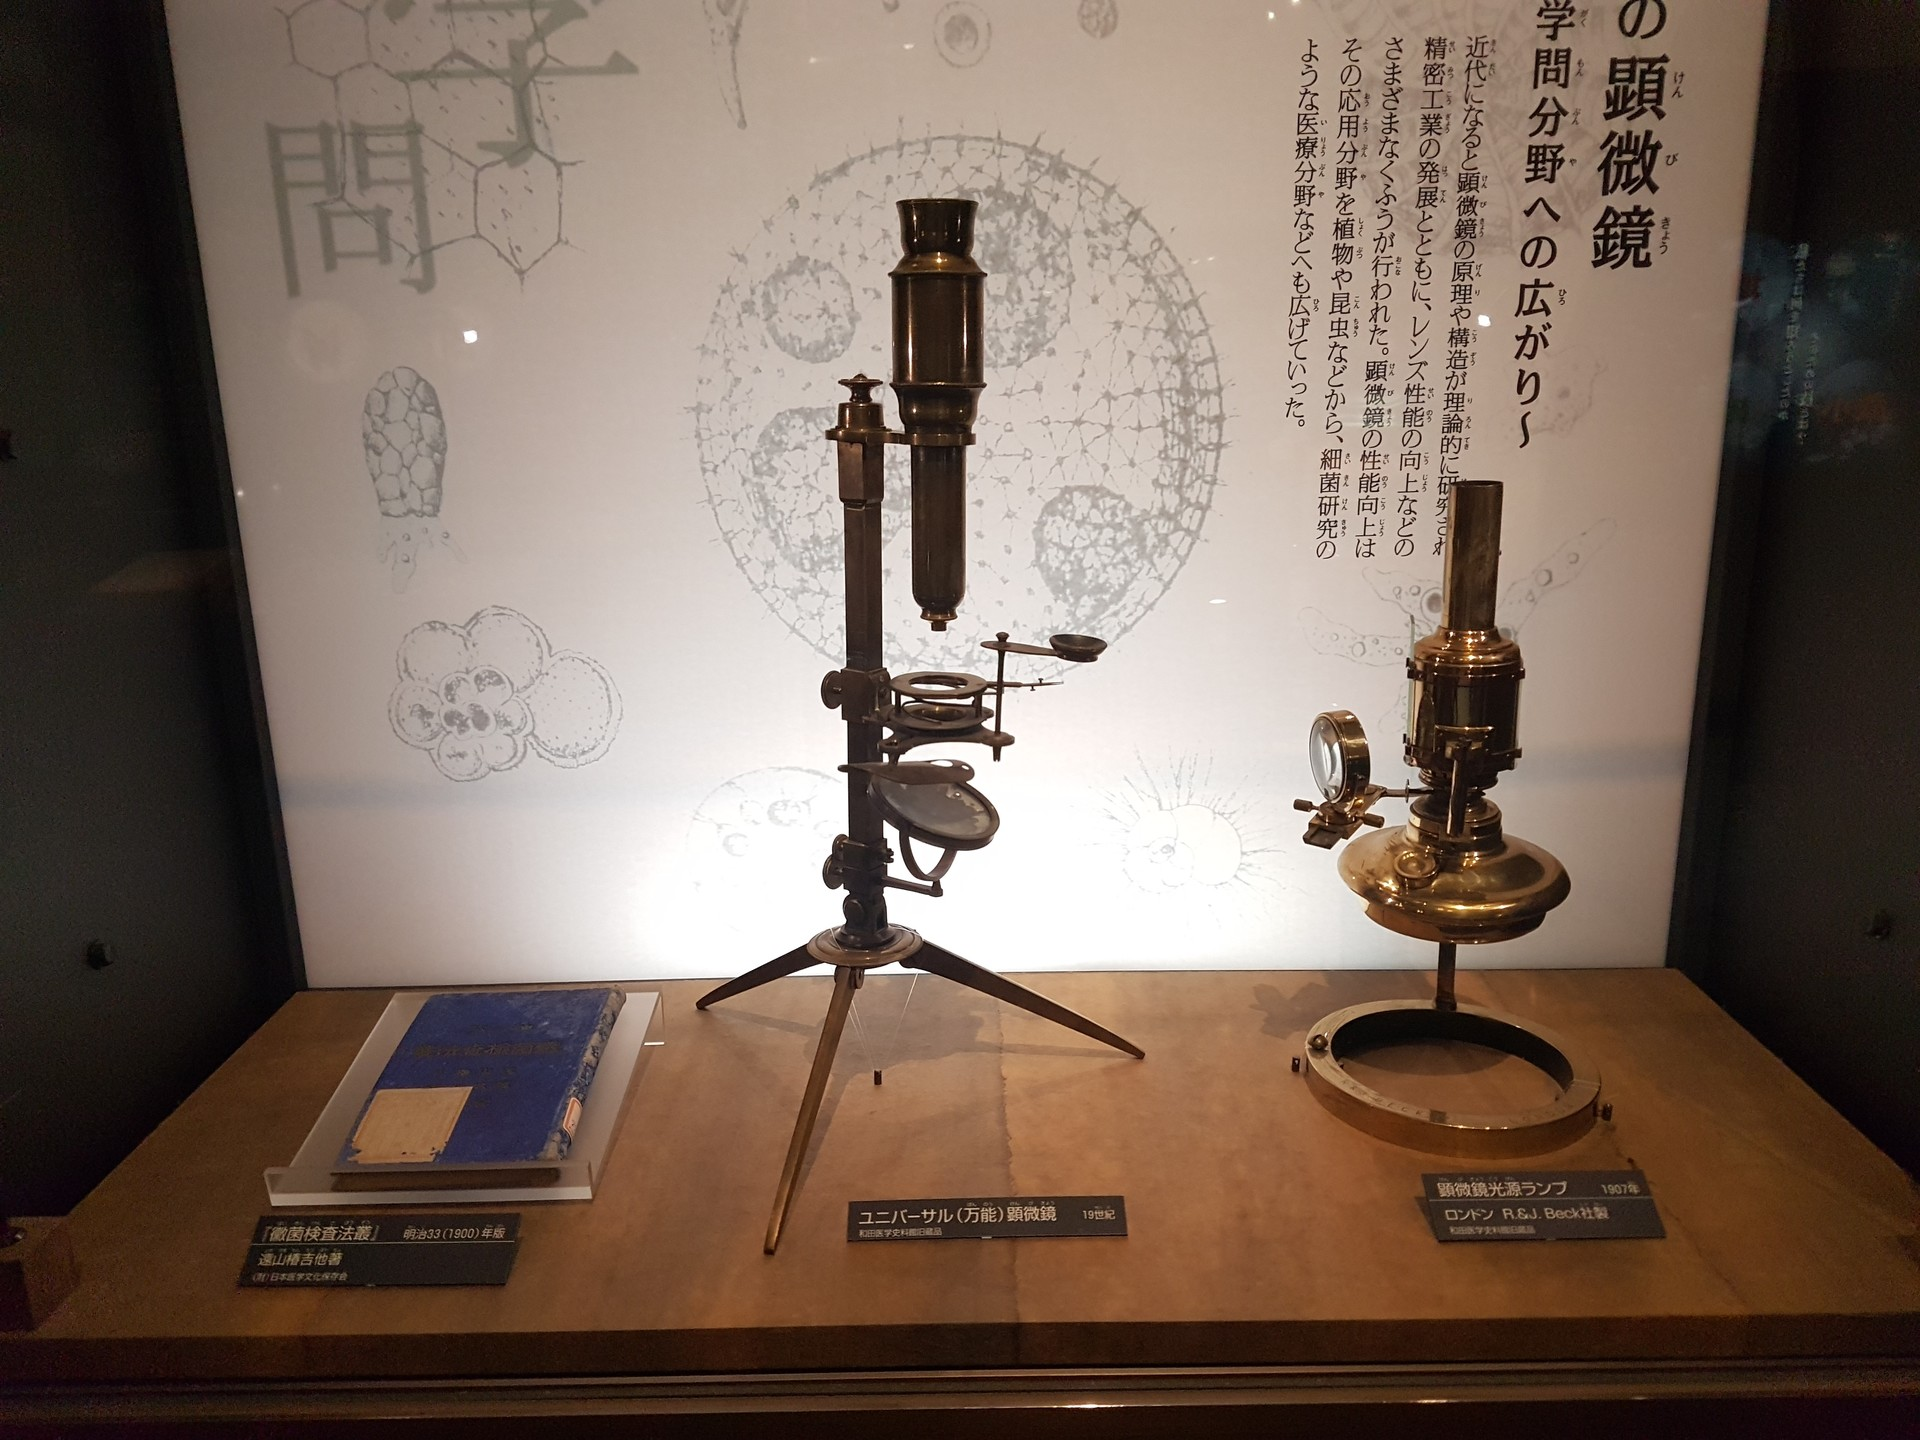 geeking-tokyo-national-museum-science-bc